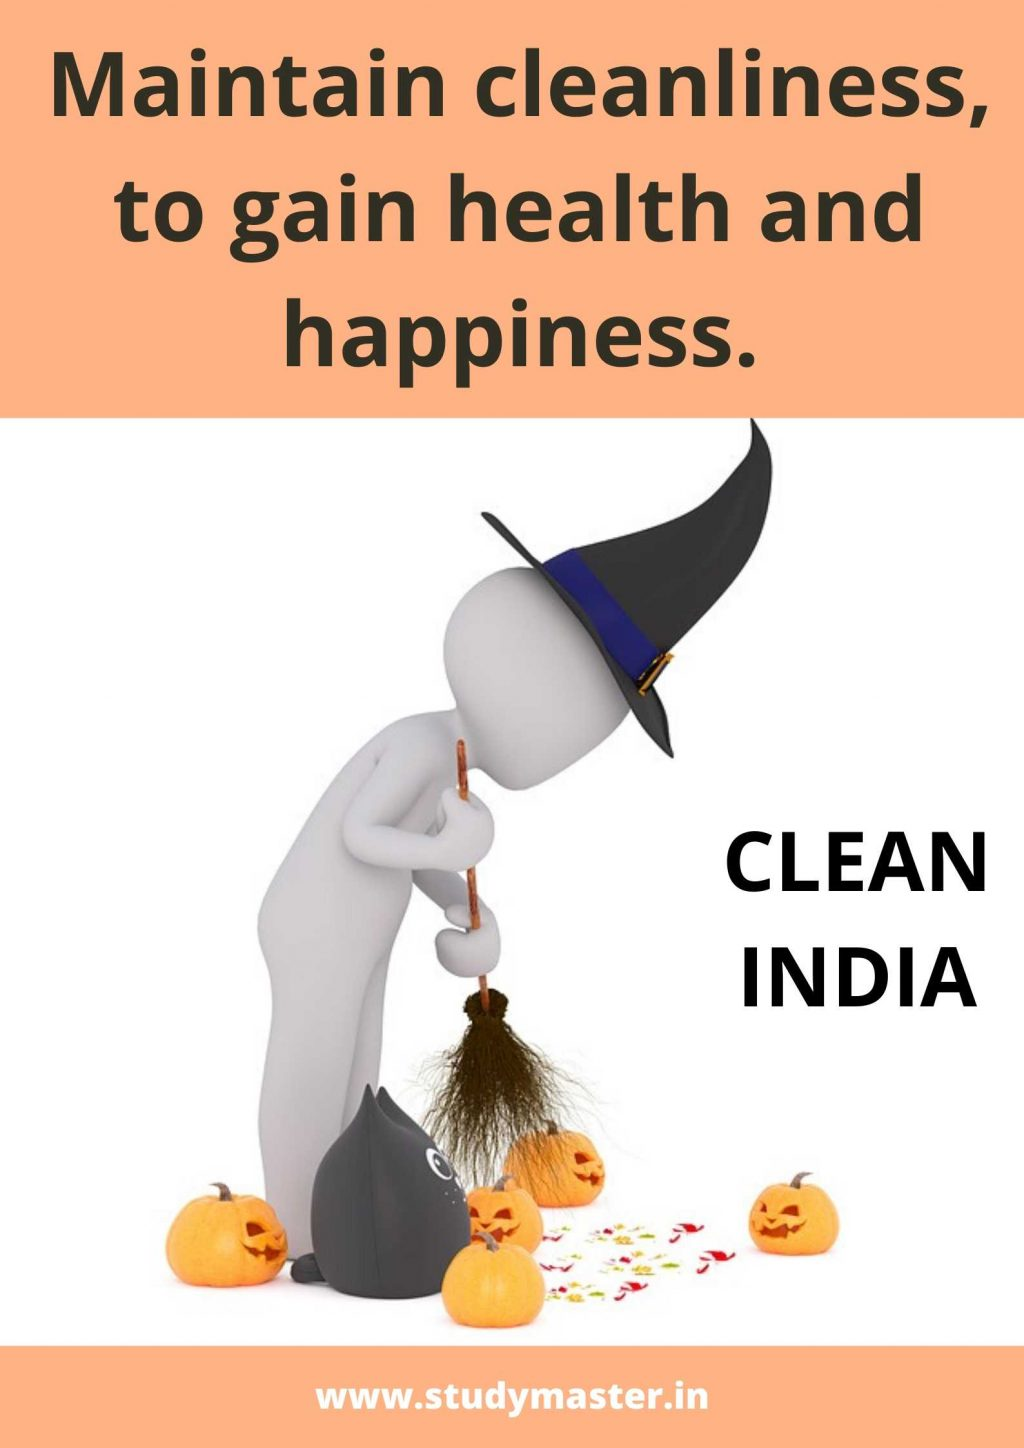 poster for cleanliness